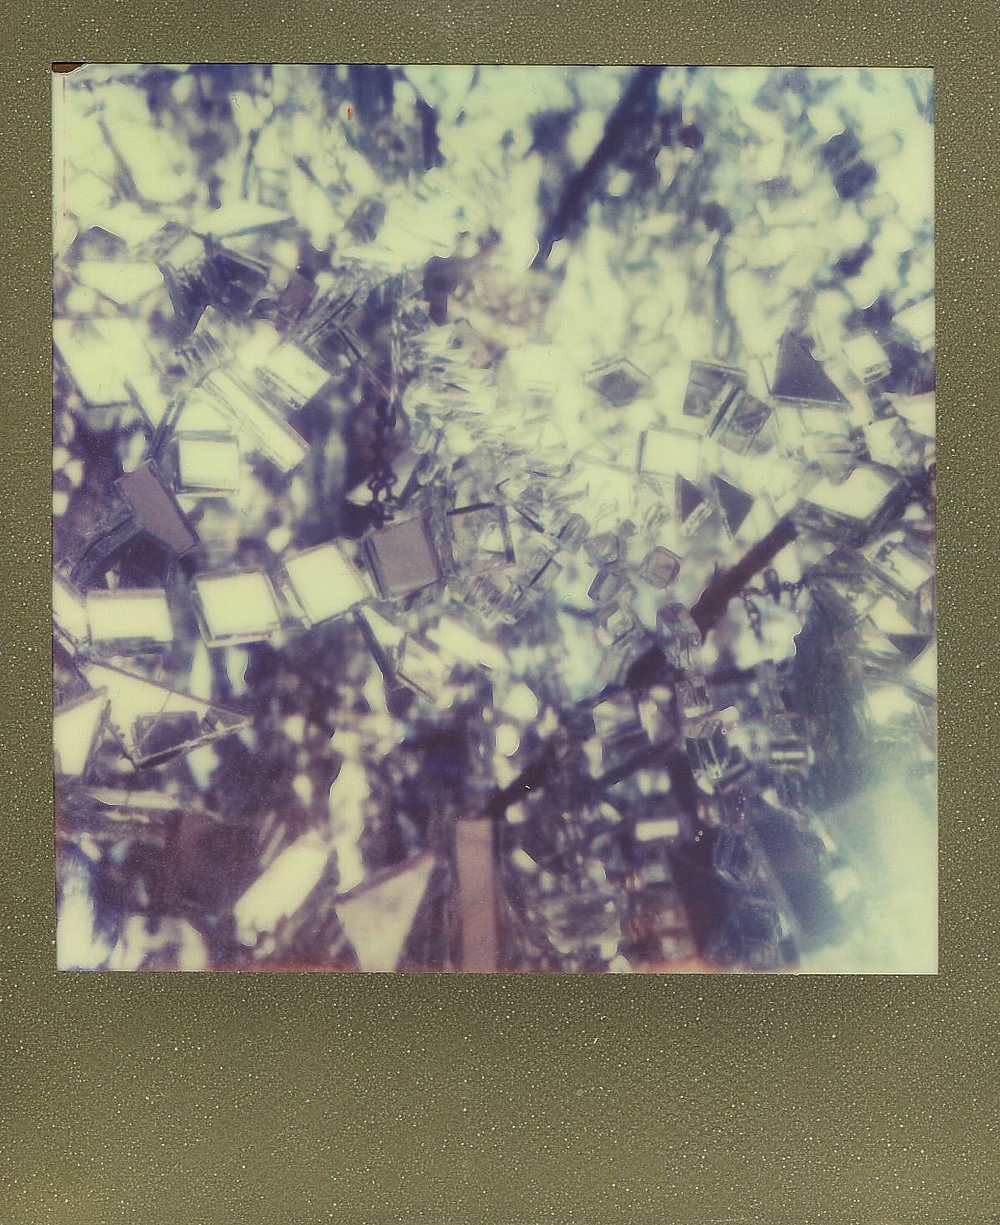 Baltimore American Visionary Art Museum 3 Gold TIP PX680 07-2013.jpg